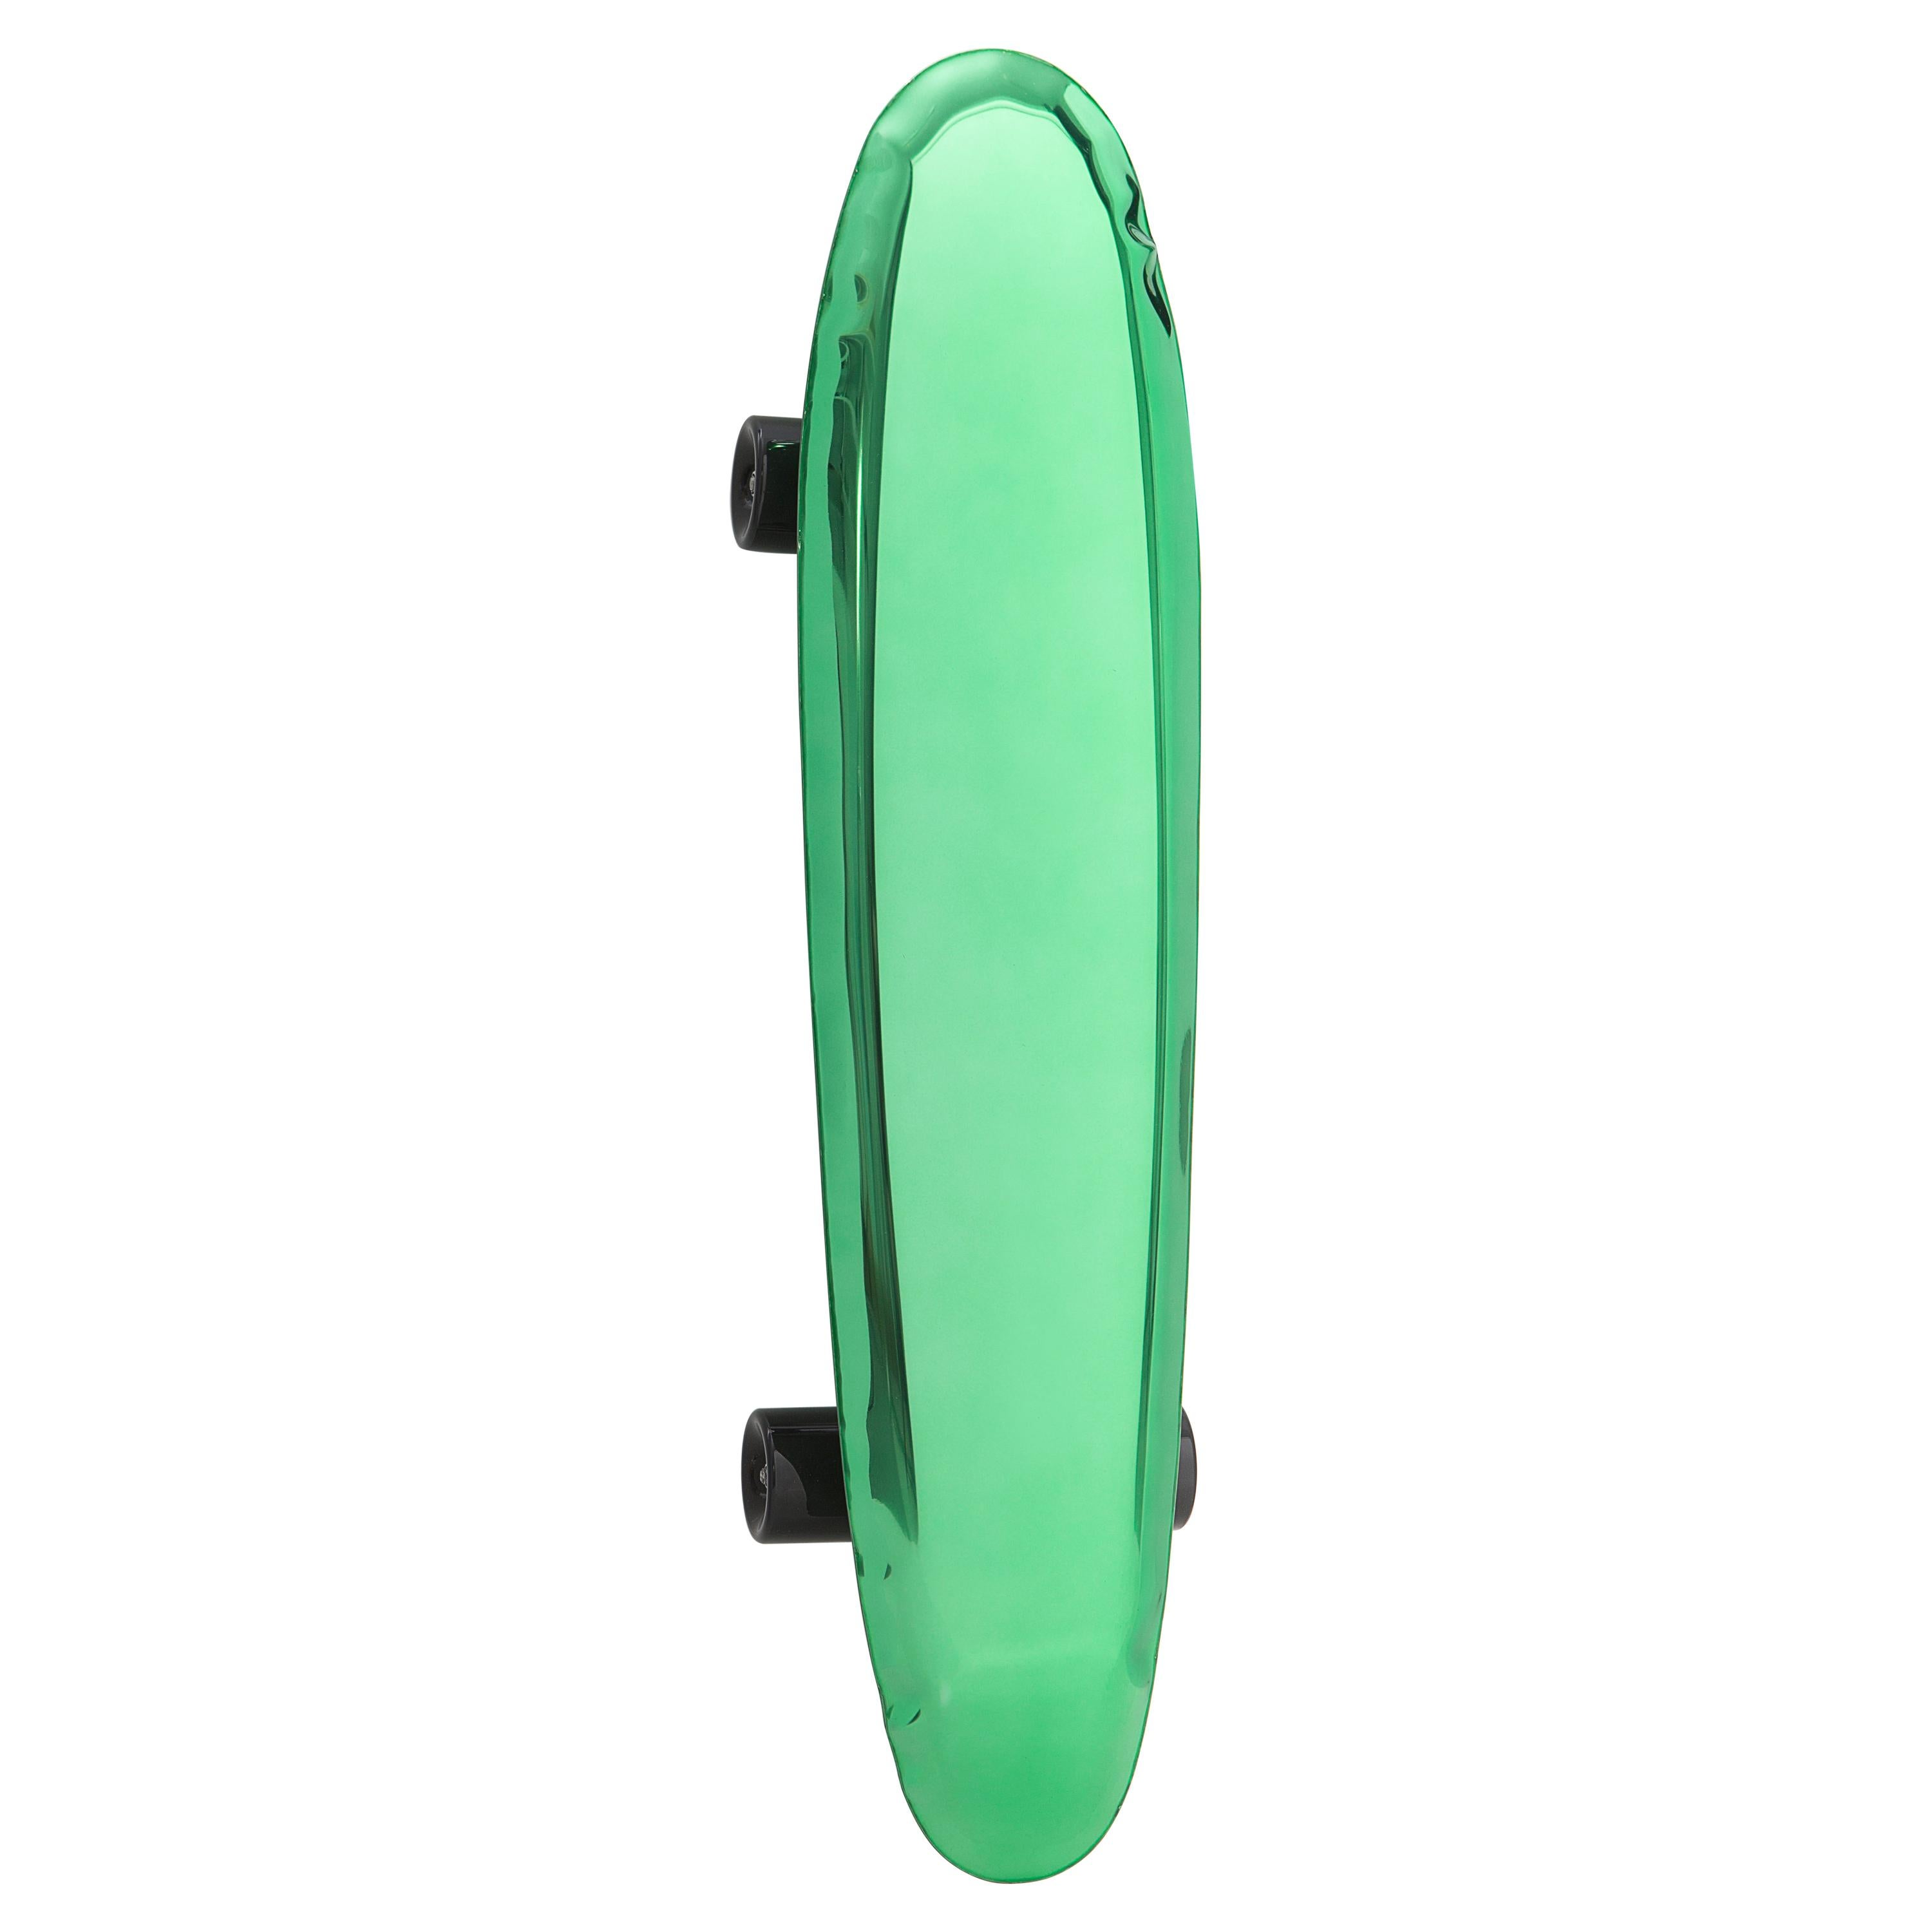 'Bolid' Green Skateboard by Zieta, Collectible Object